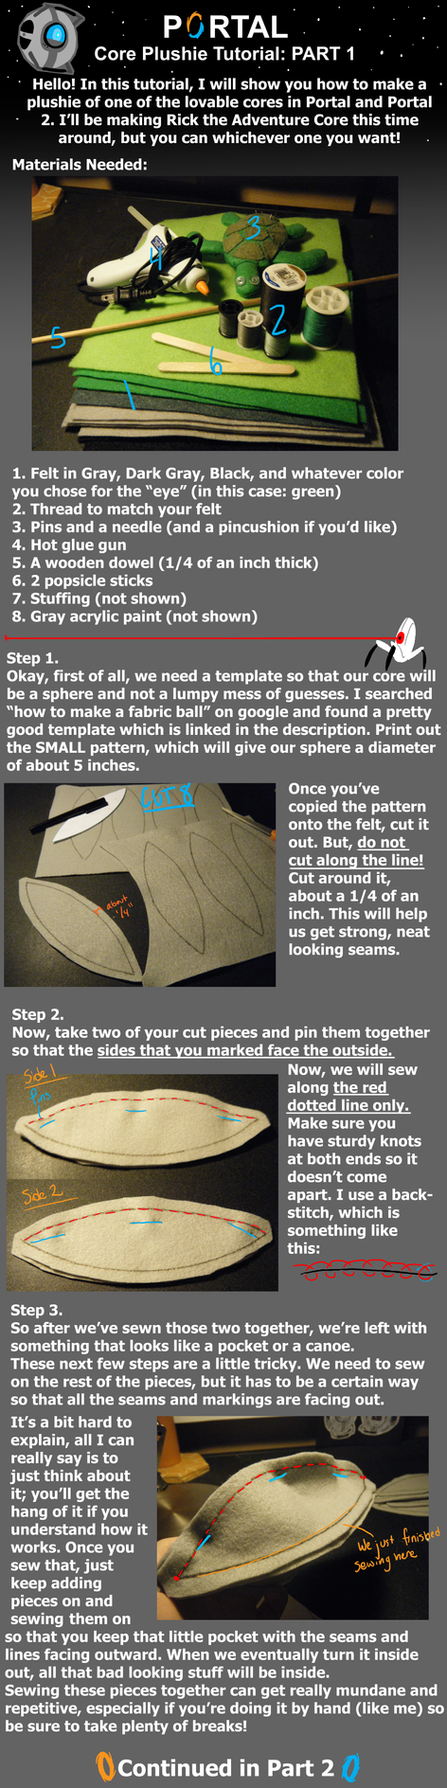 Core Plushie Tutorial: Part 1 by Homemade-Happiness